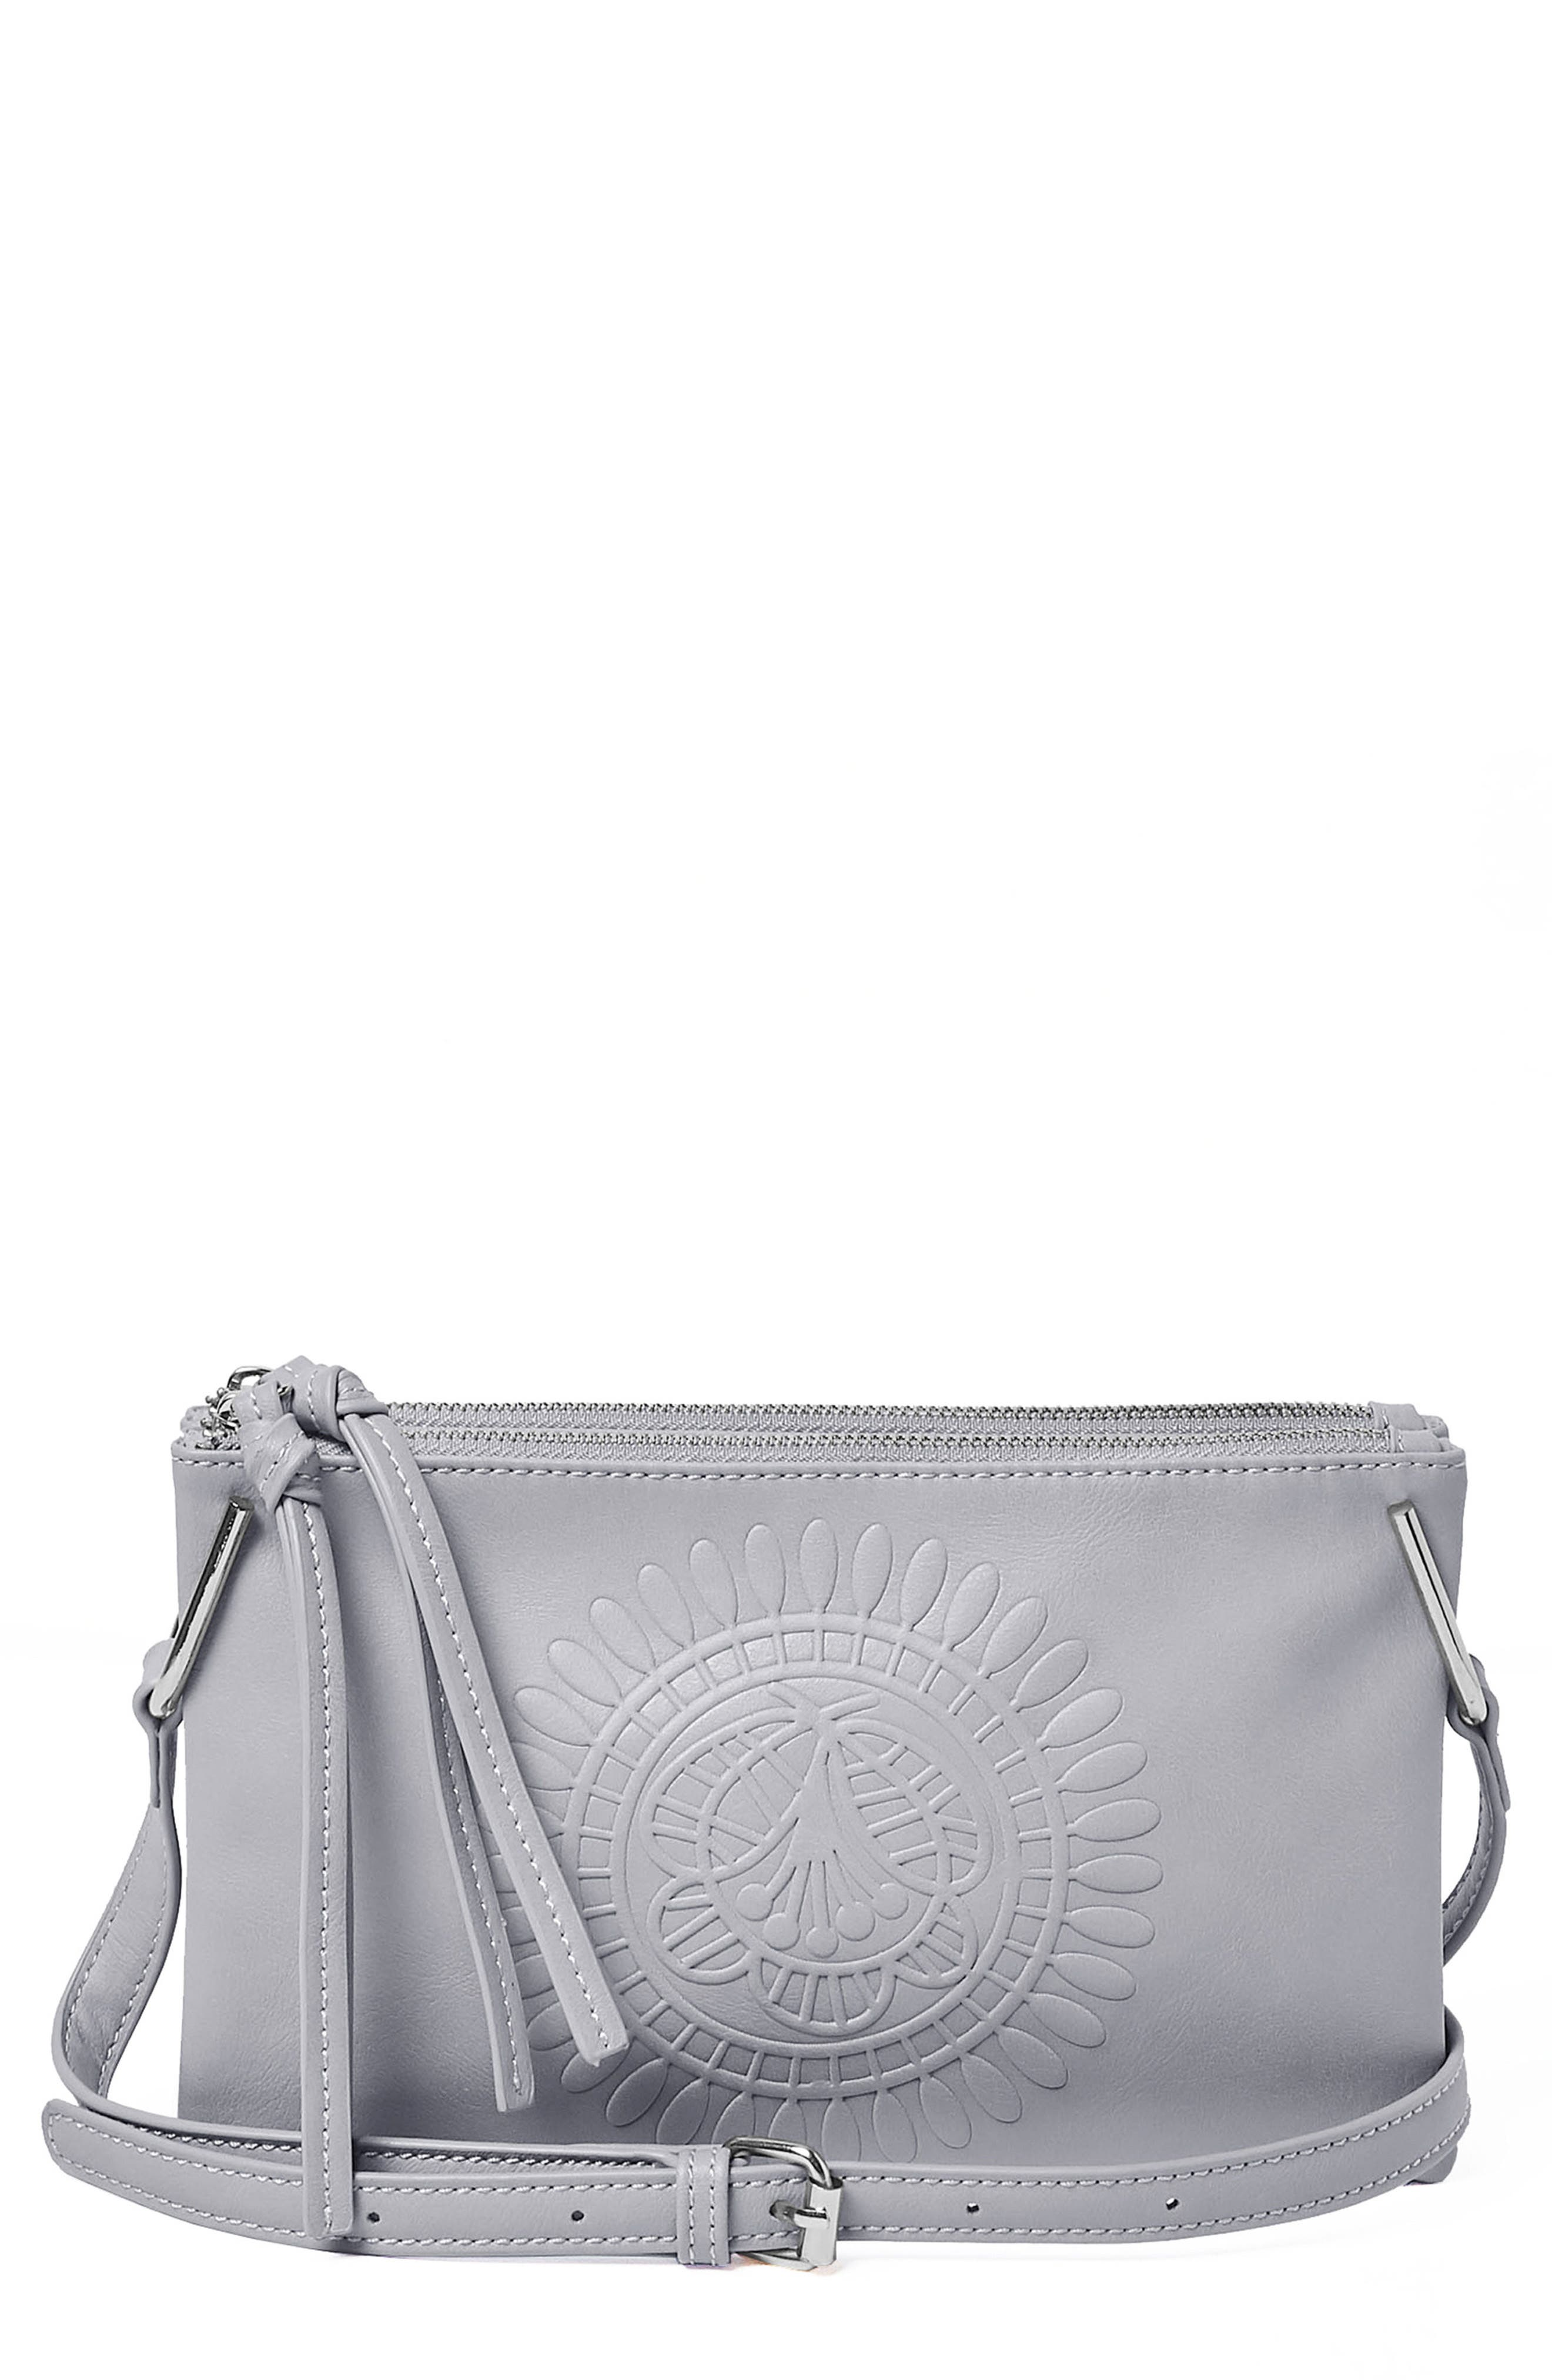 Urban Originals FLOWER VEGAN LEATHER CROSSBODY BAG - GREY